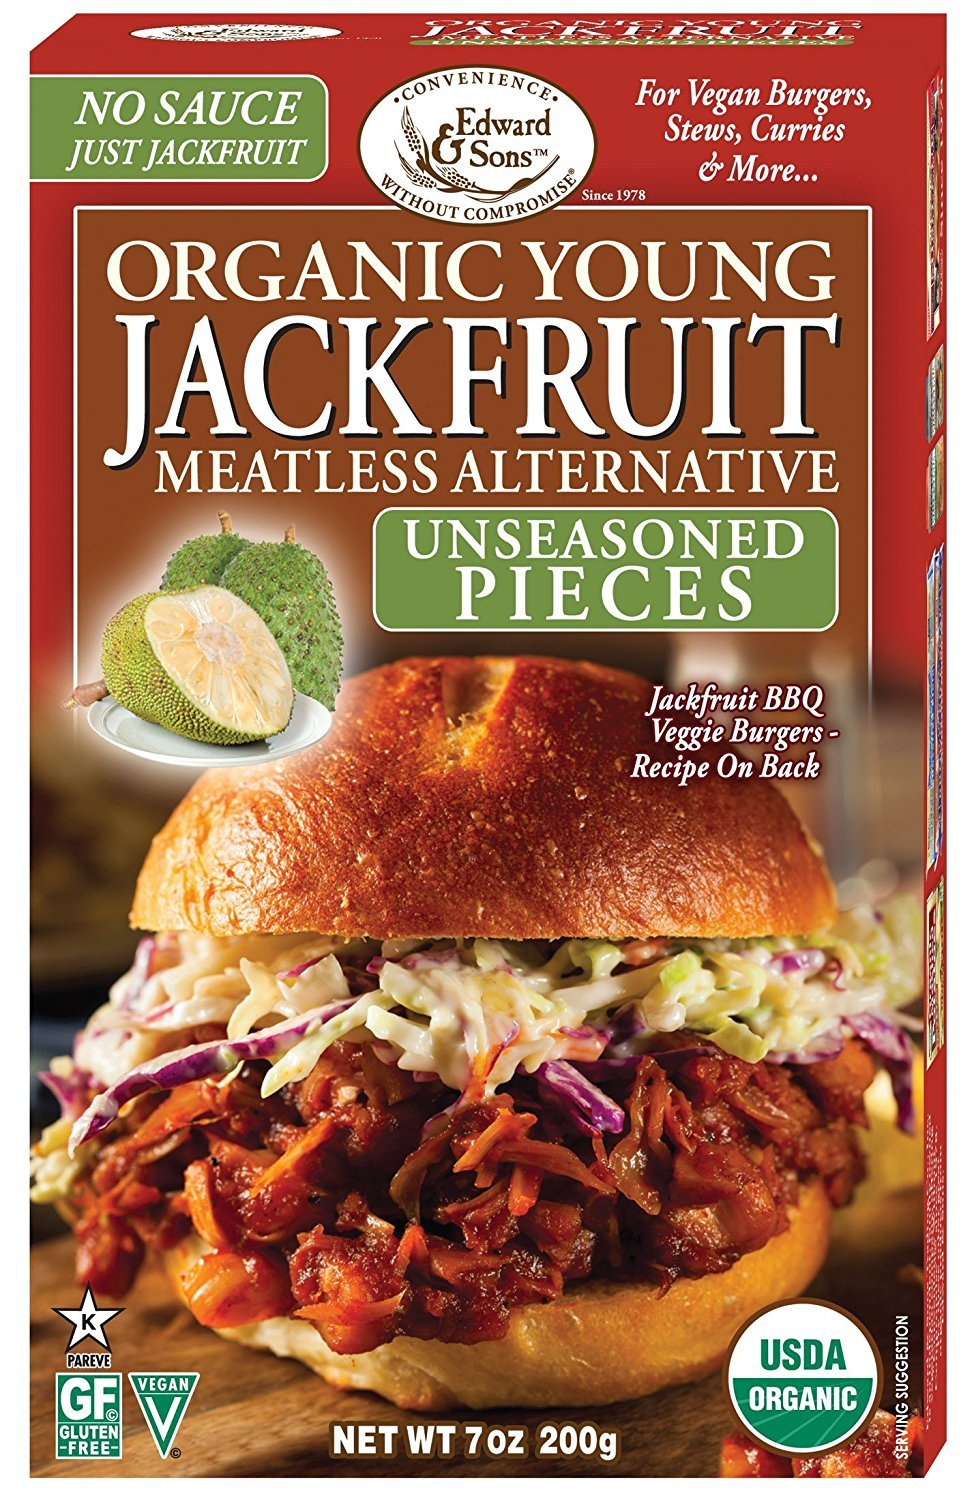 Edward & Sons Organic Young Jackfruit, 7 Ounce (Pack of 3)